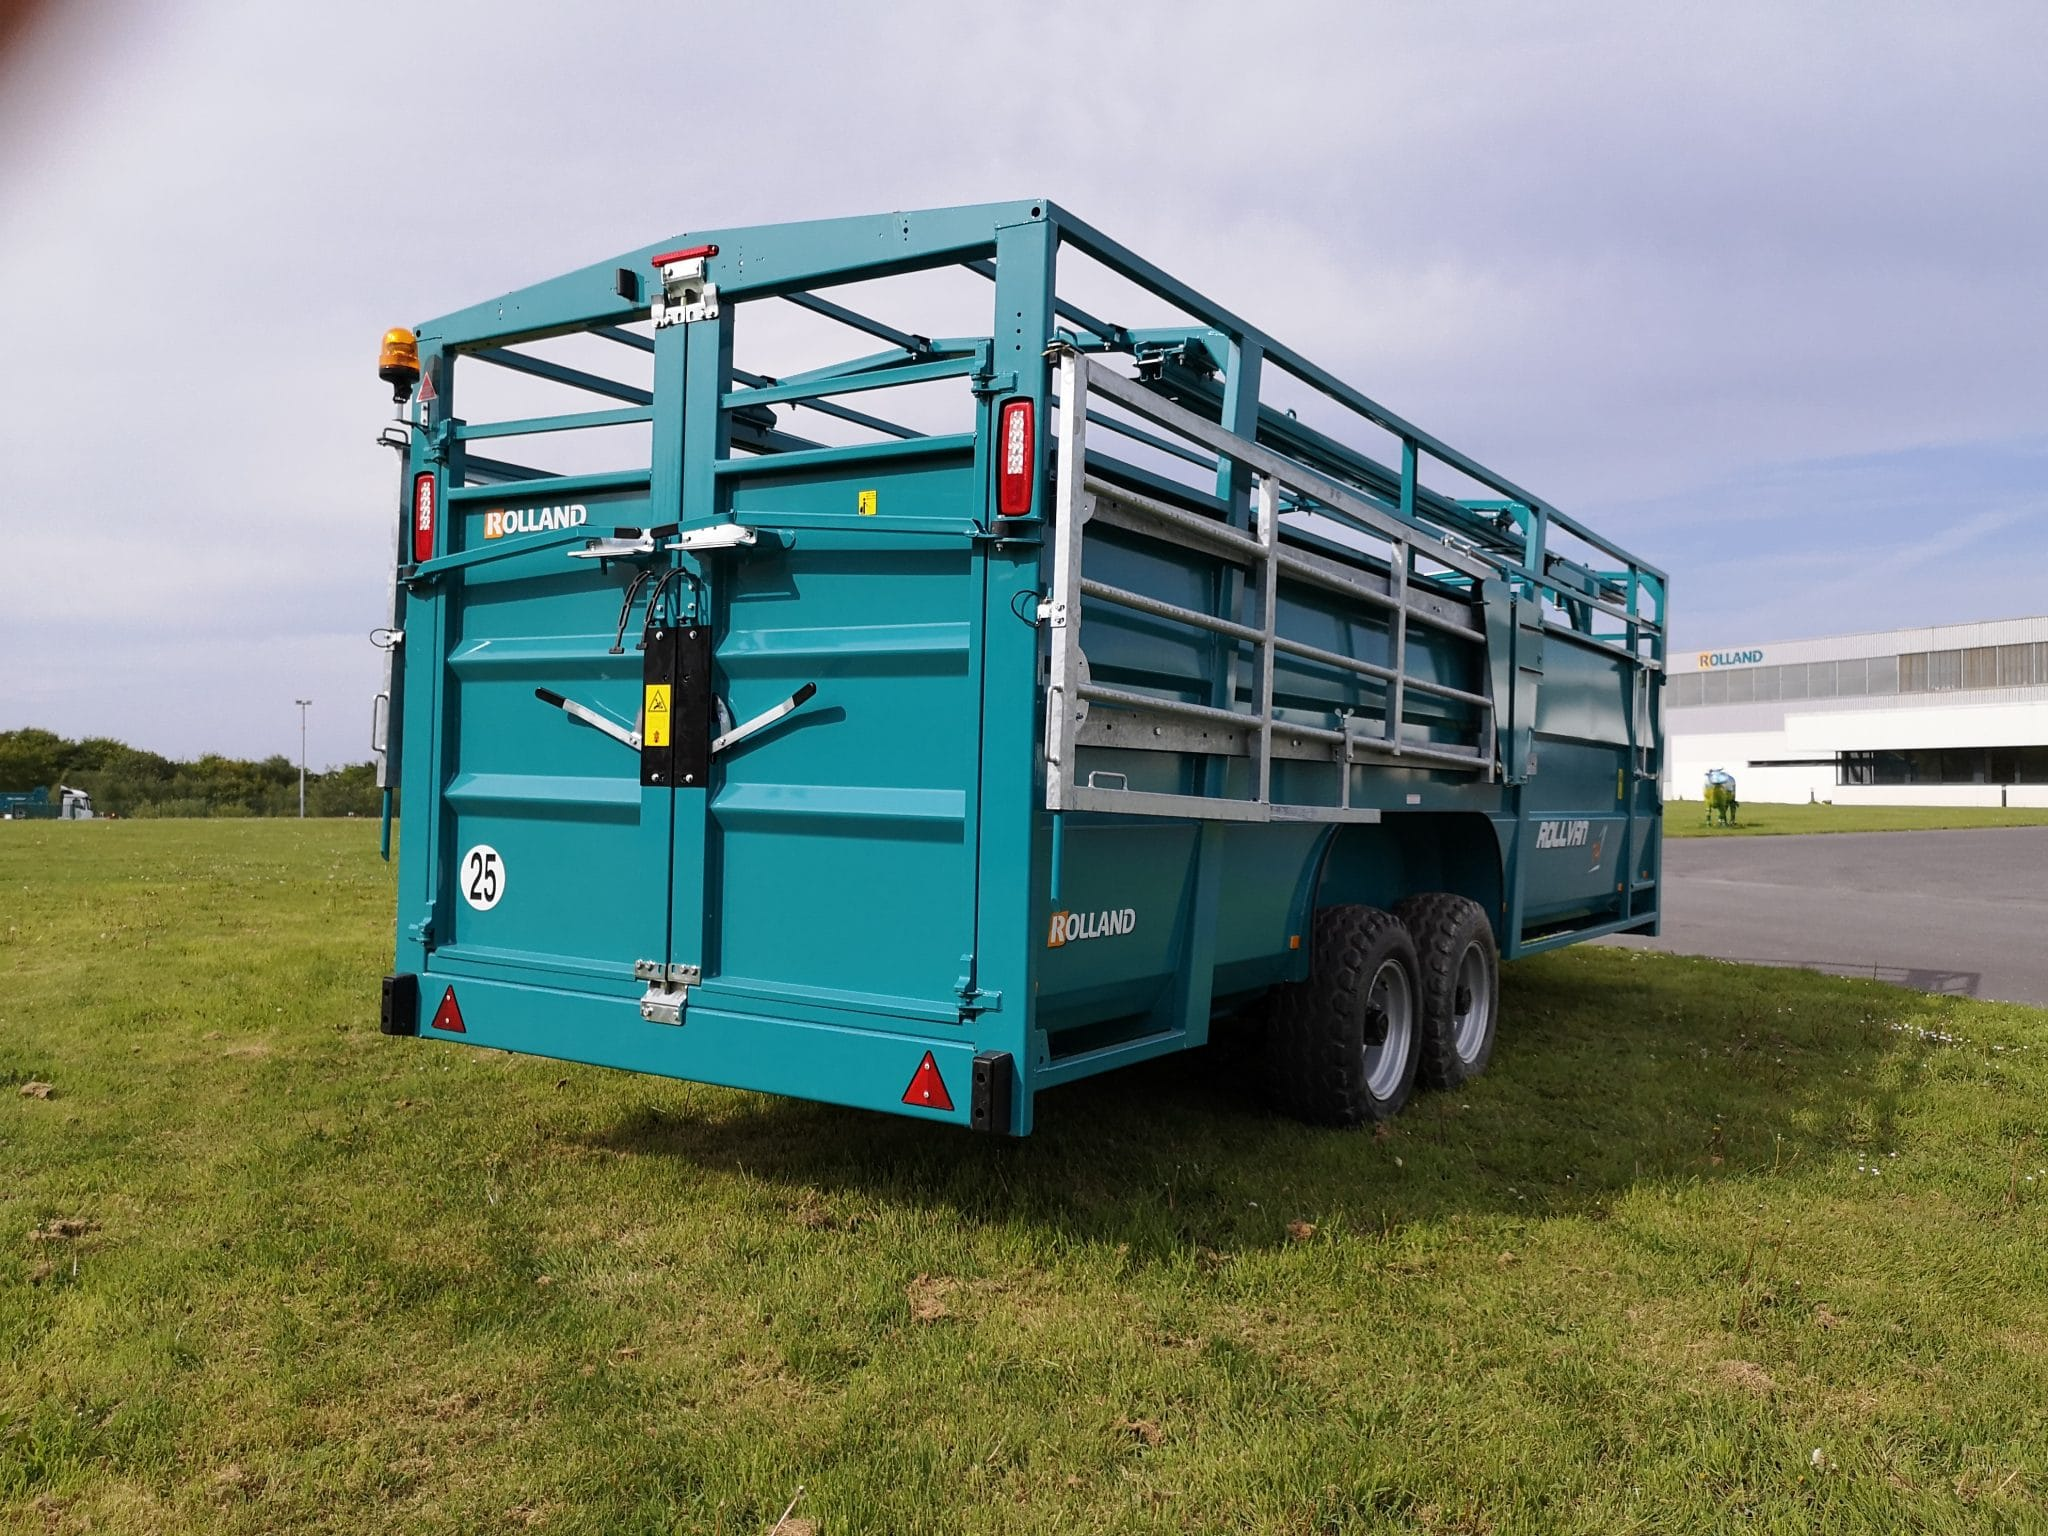 Cattle trailers